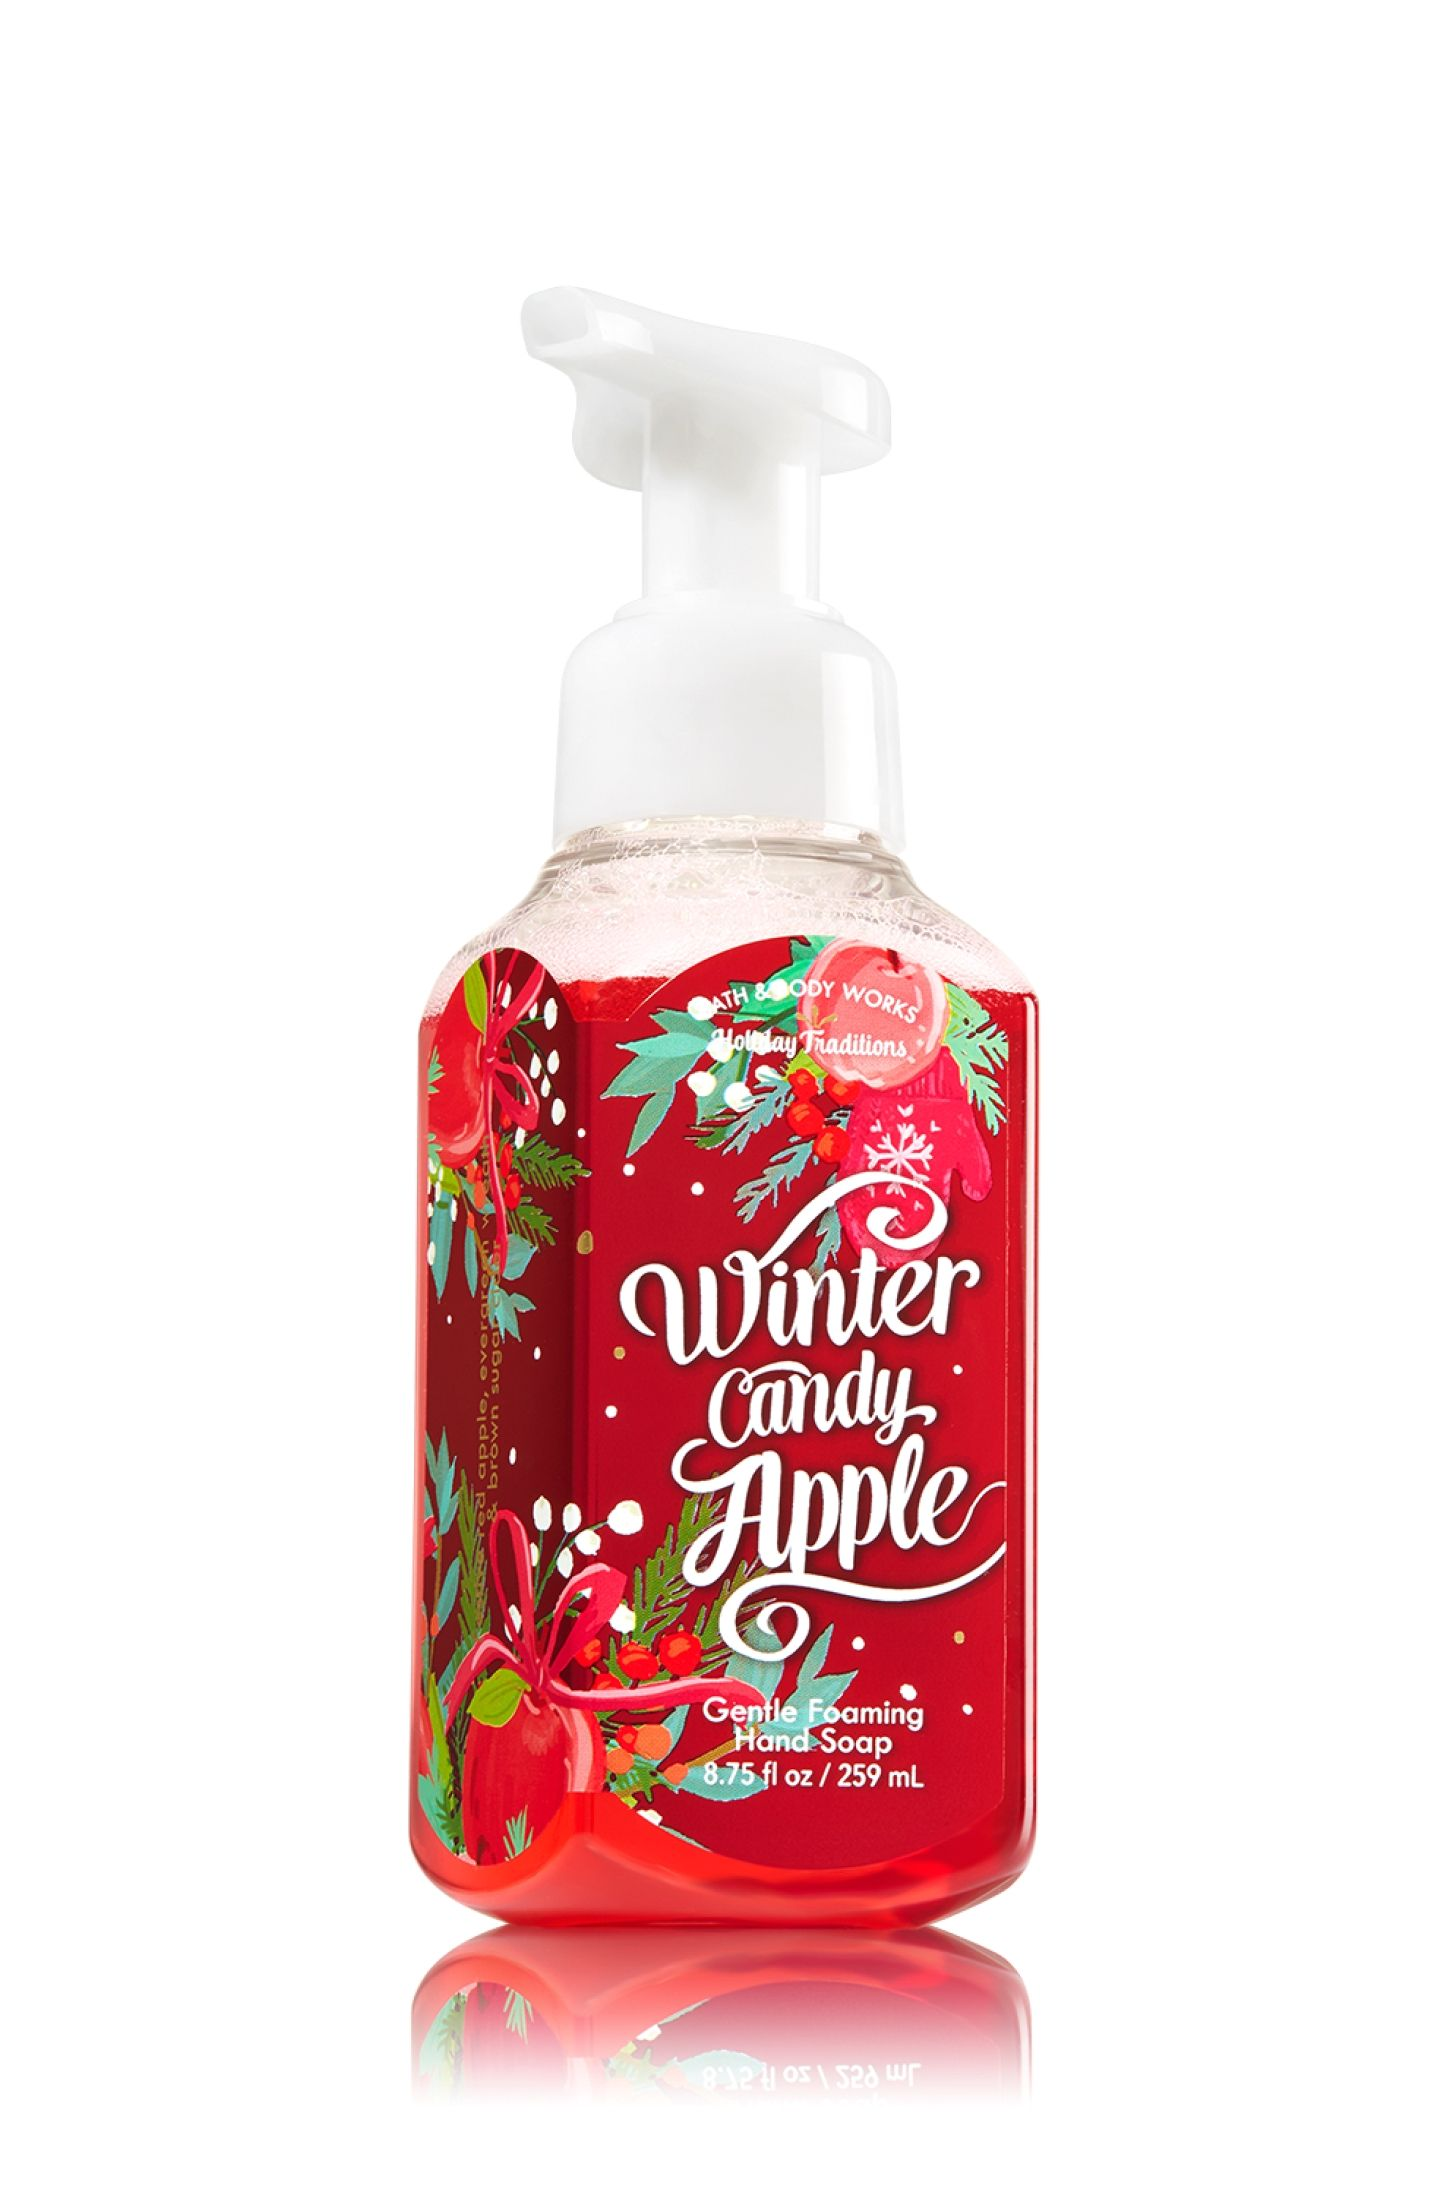 Winter Candy Apple Gentle Foaming Hand Soap Soap Sanitizer